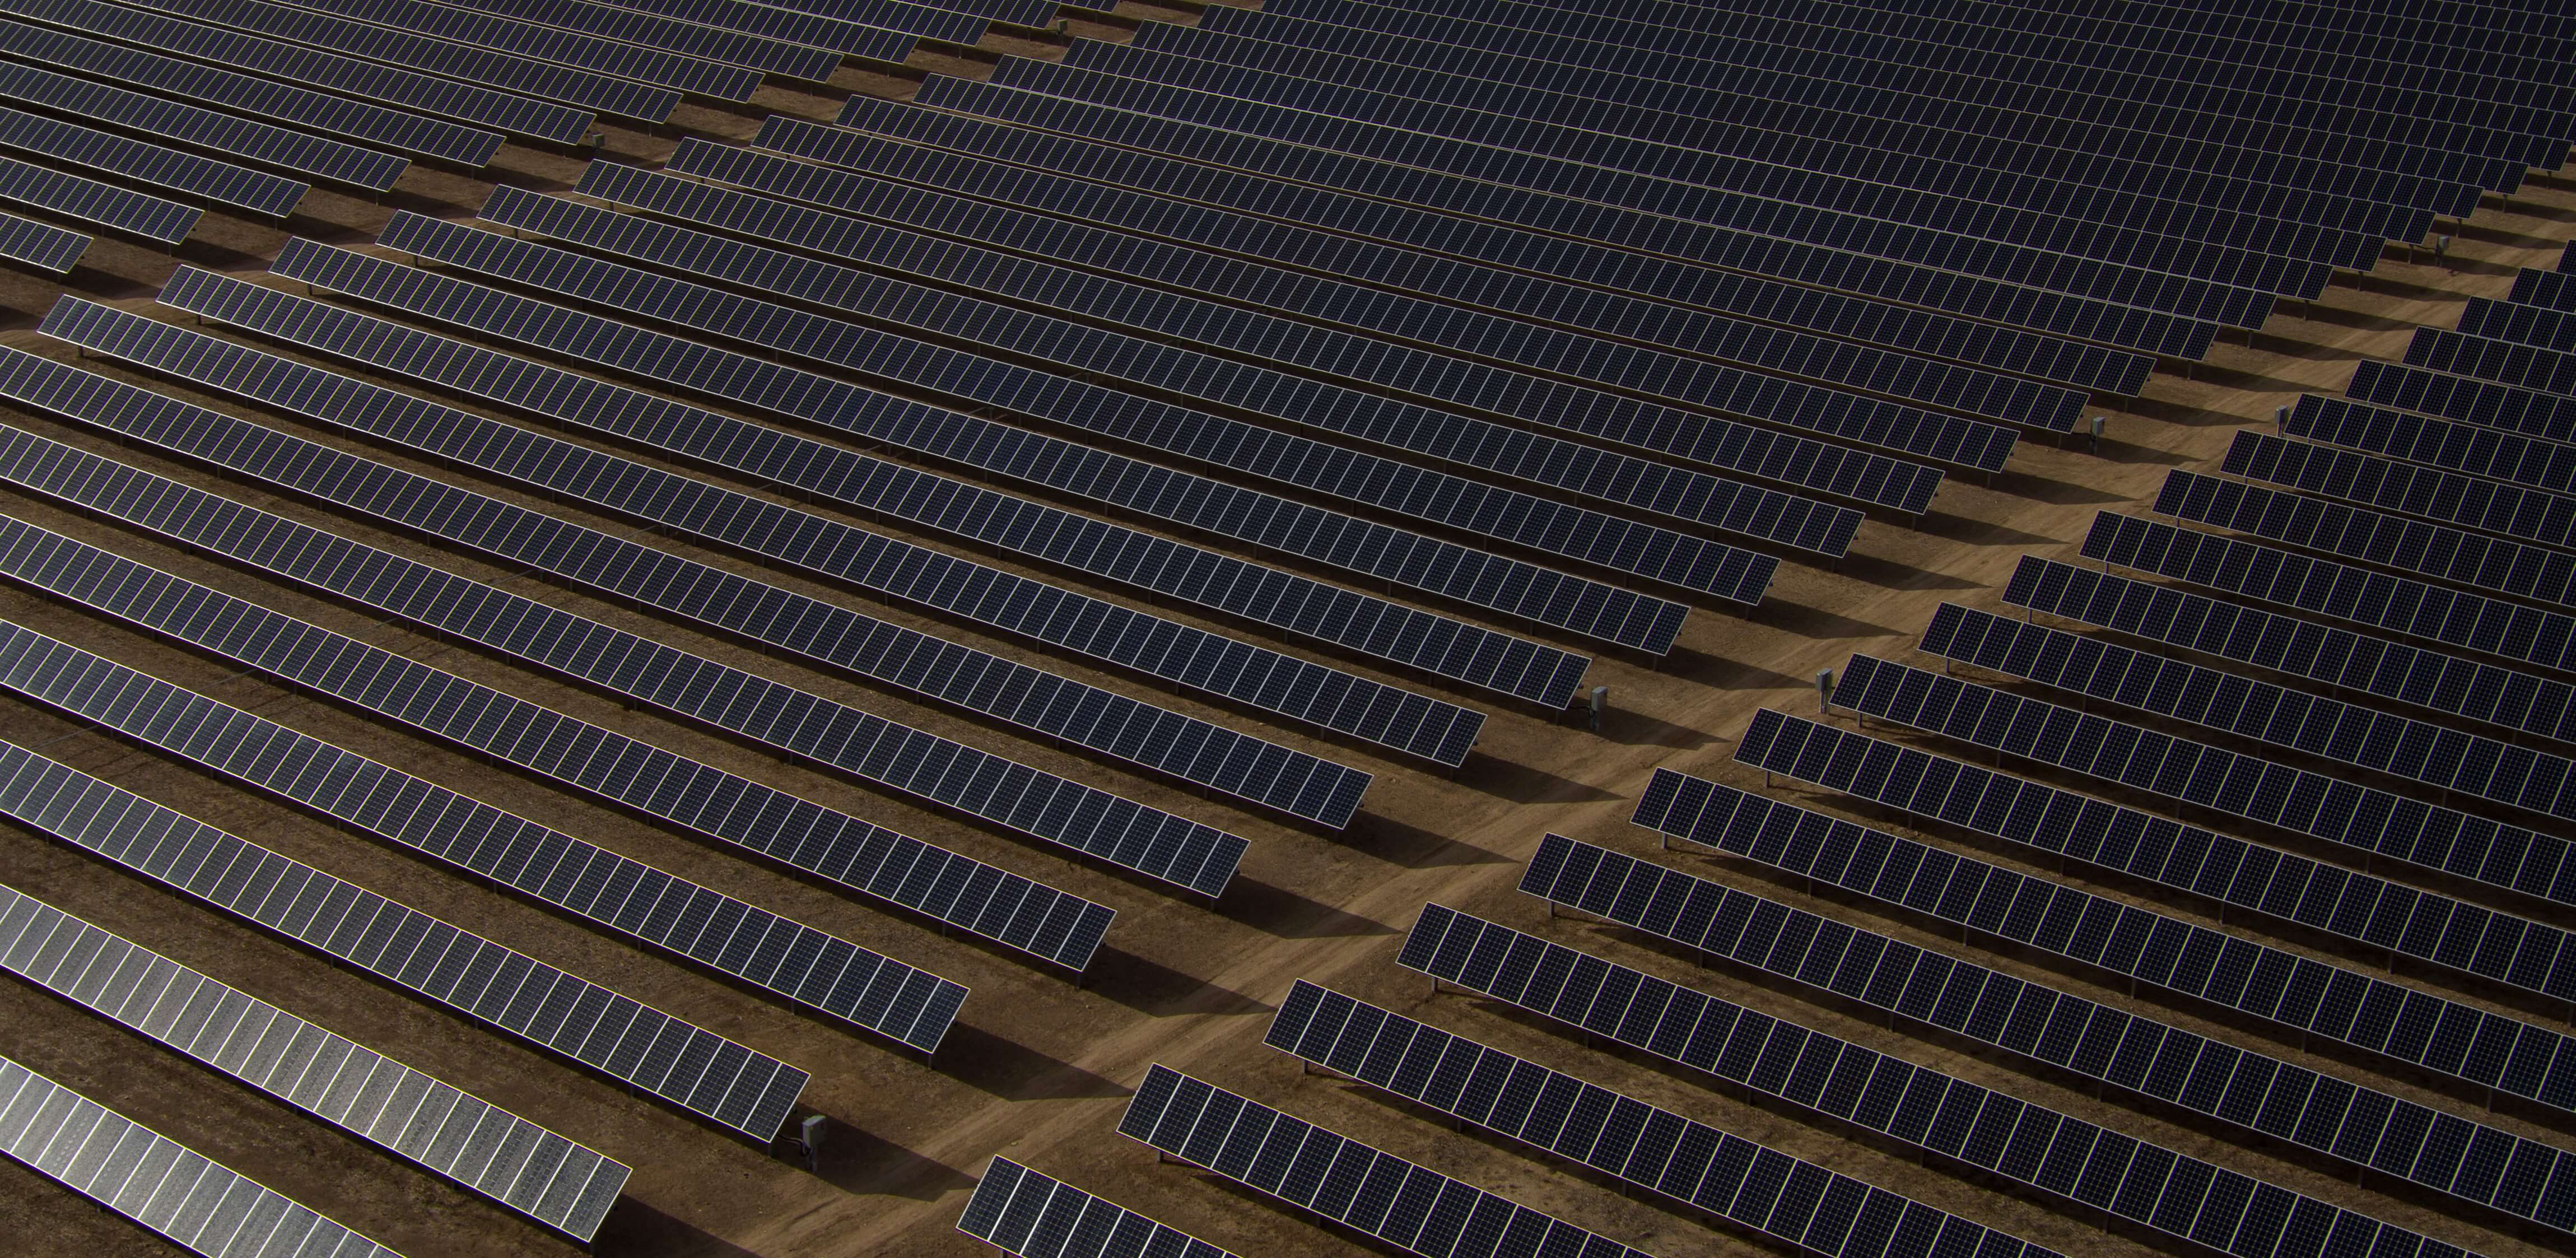 Solar arrays currently require a great deal of space and leave a lot to be desired for efficiency, International Solar Investments Driving Battery Metals